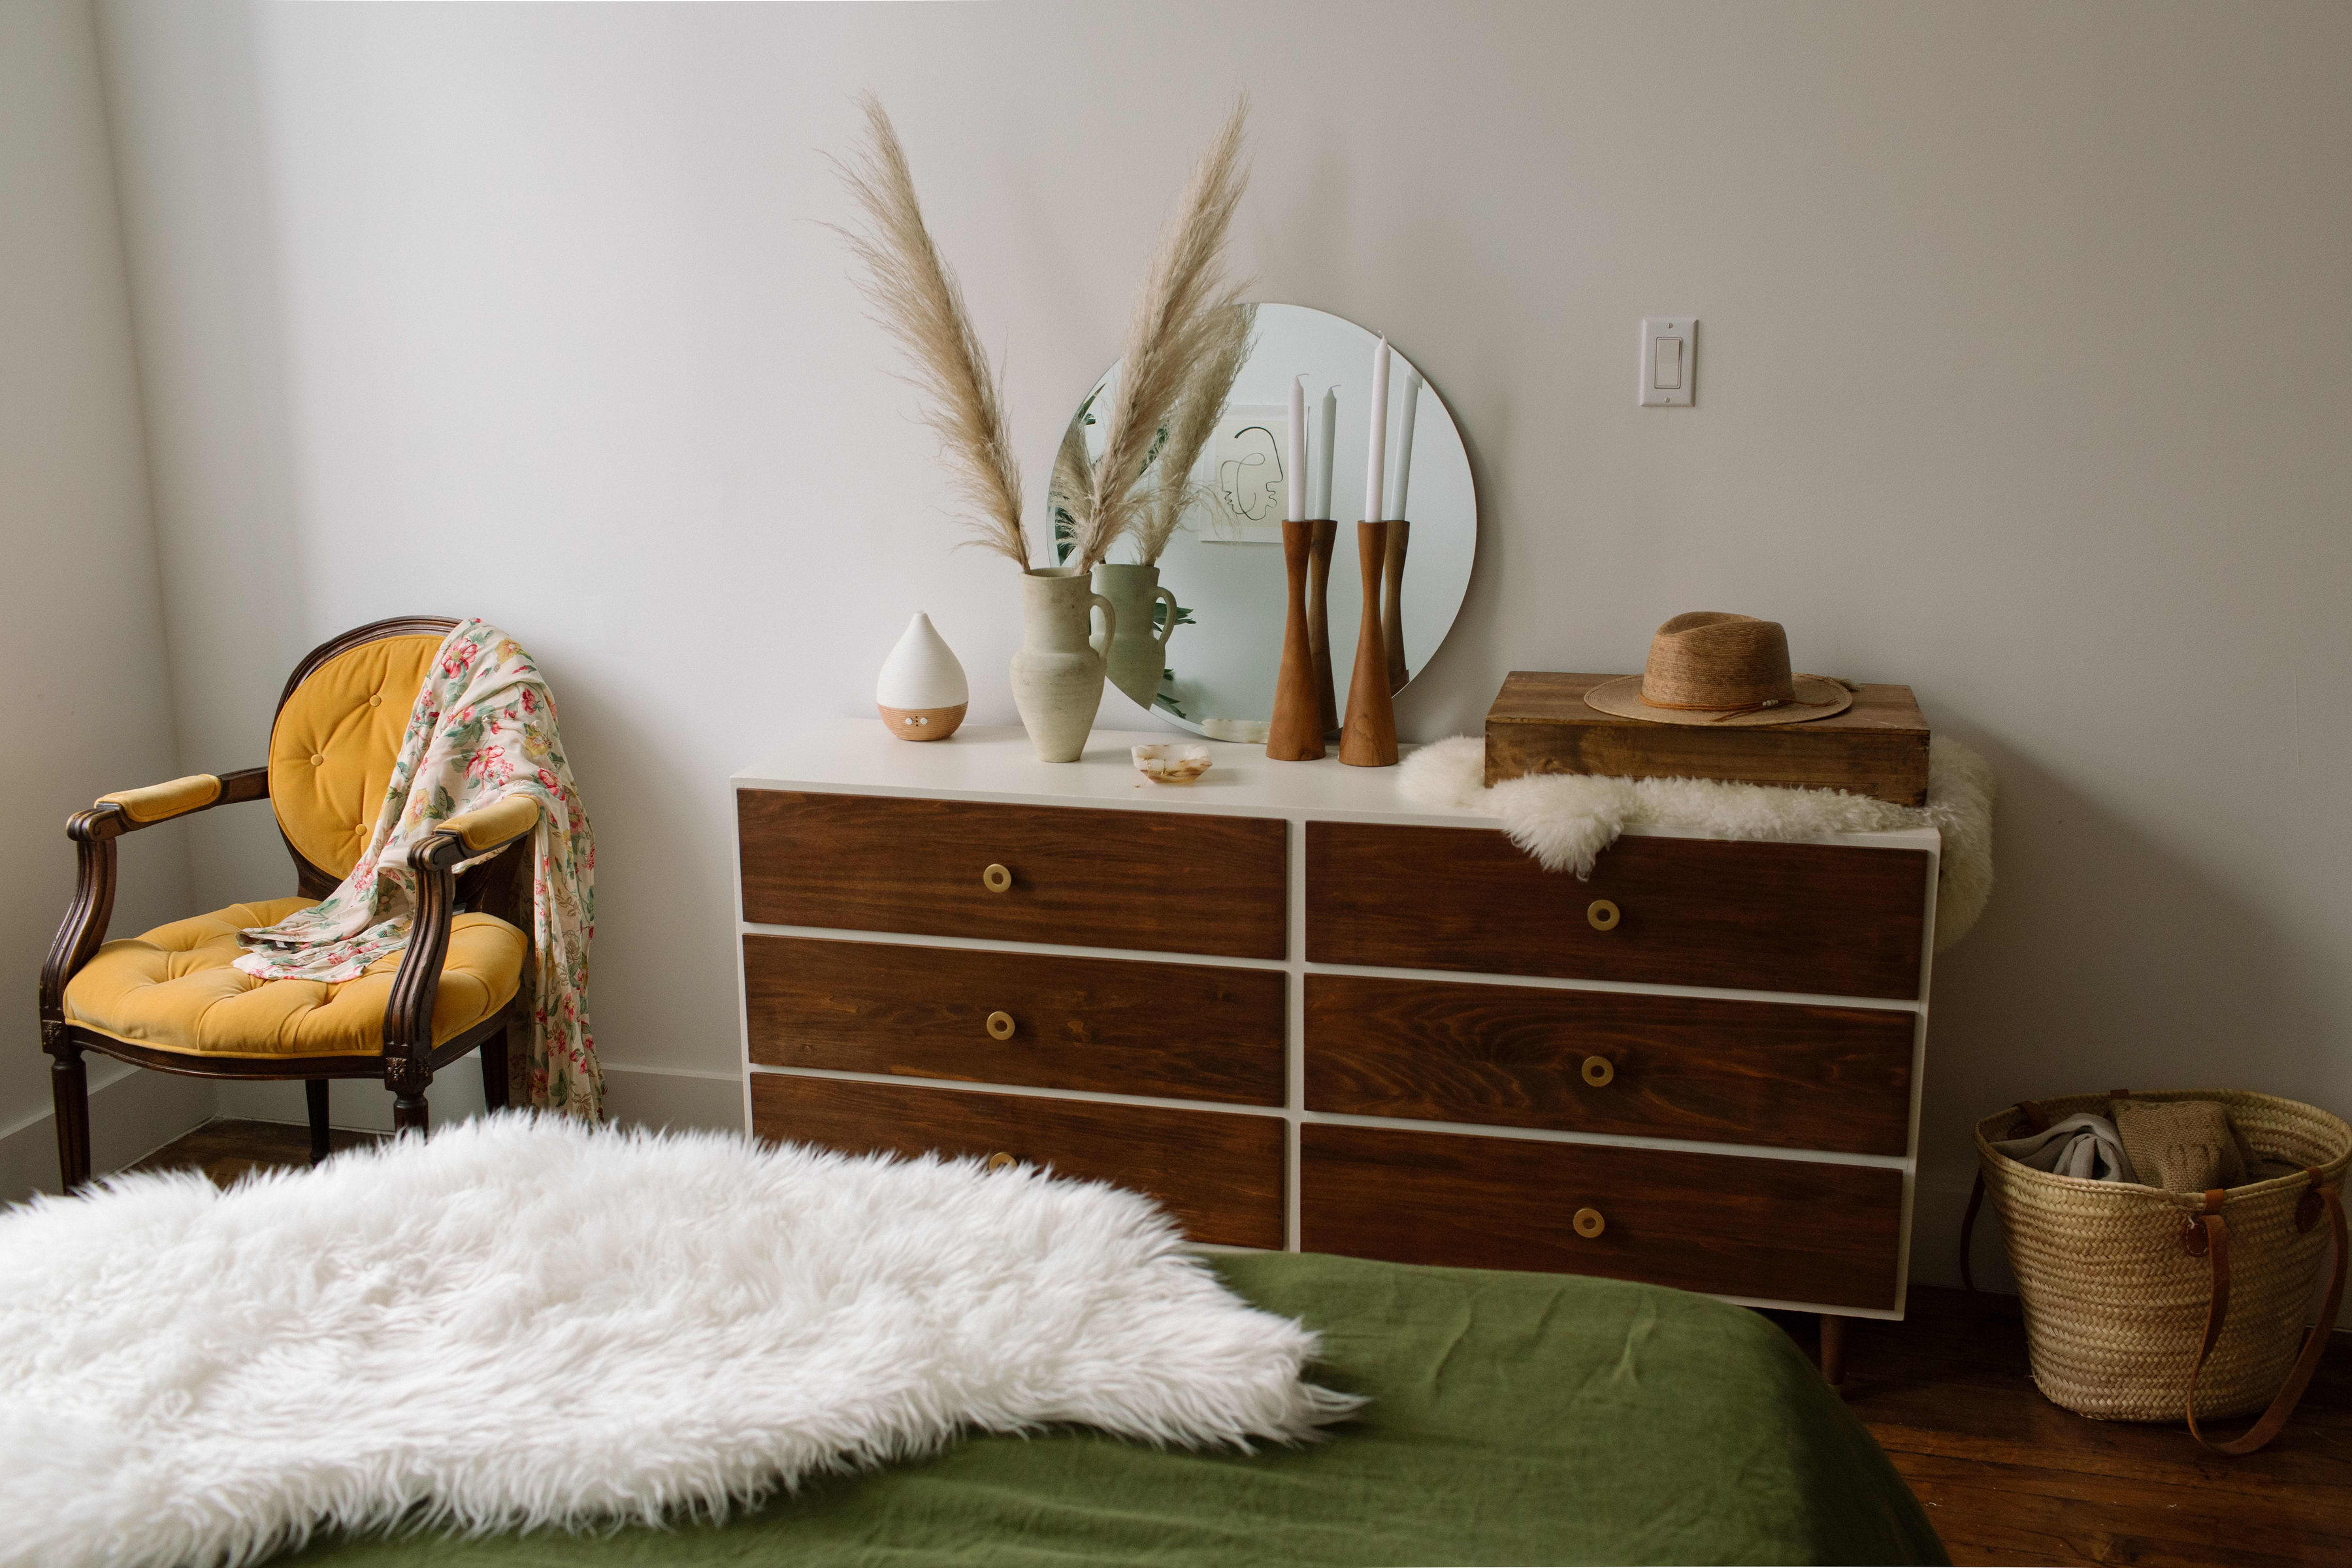 Zero Waste Decor And Lifestyle Tips And Home Photos